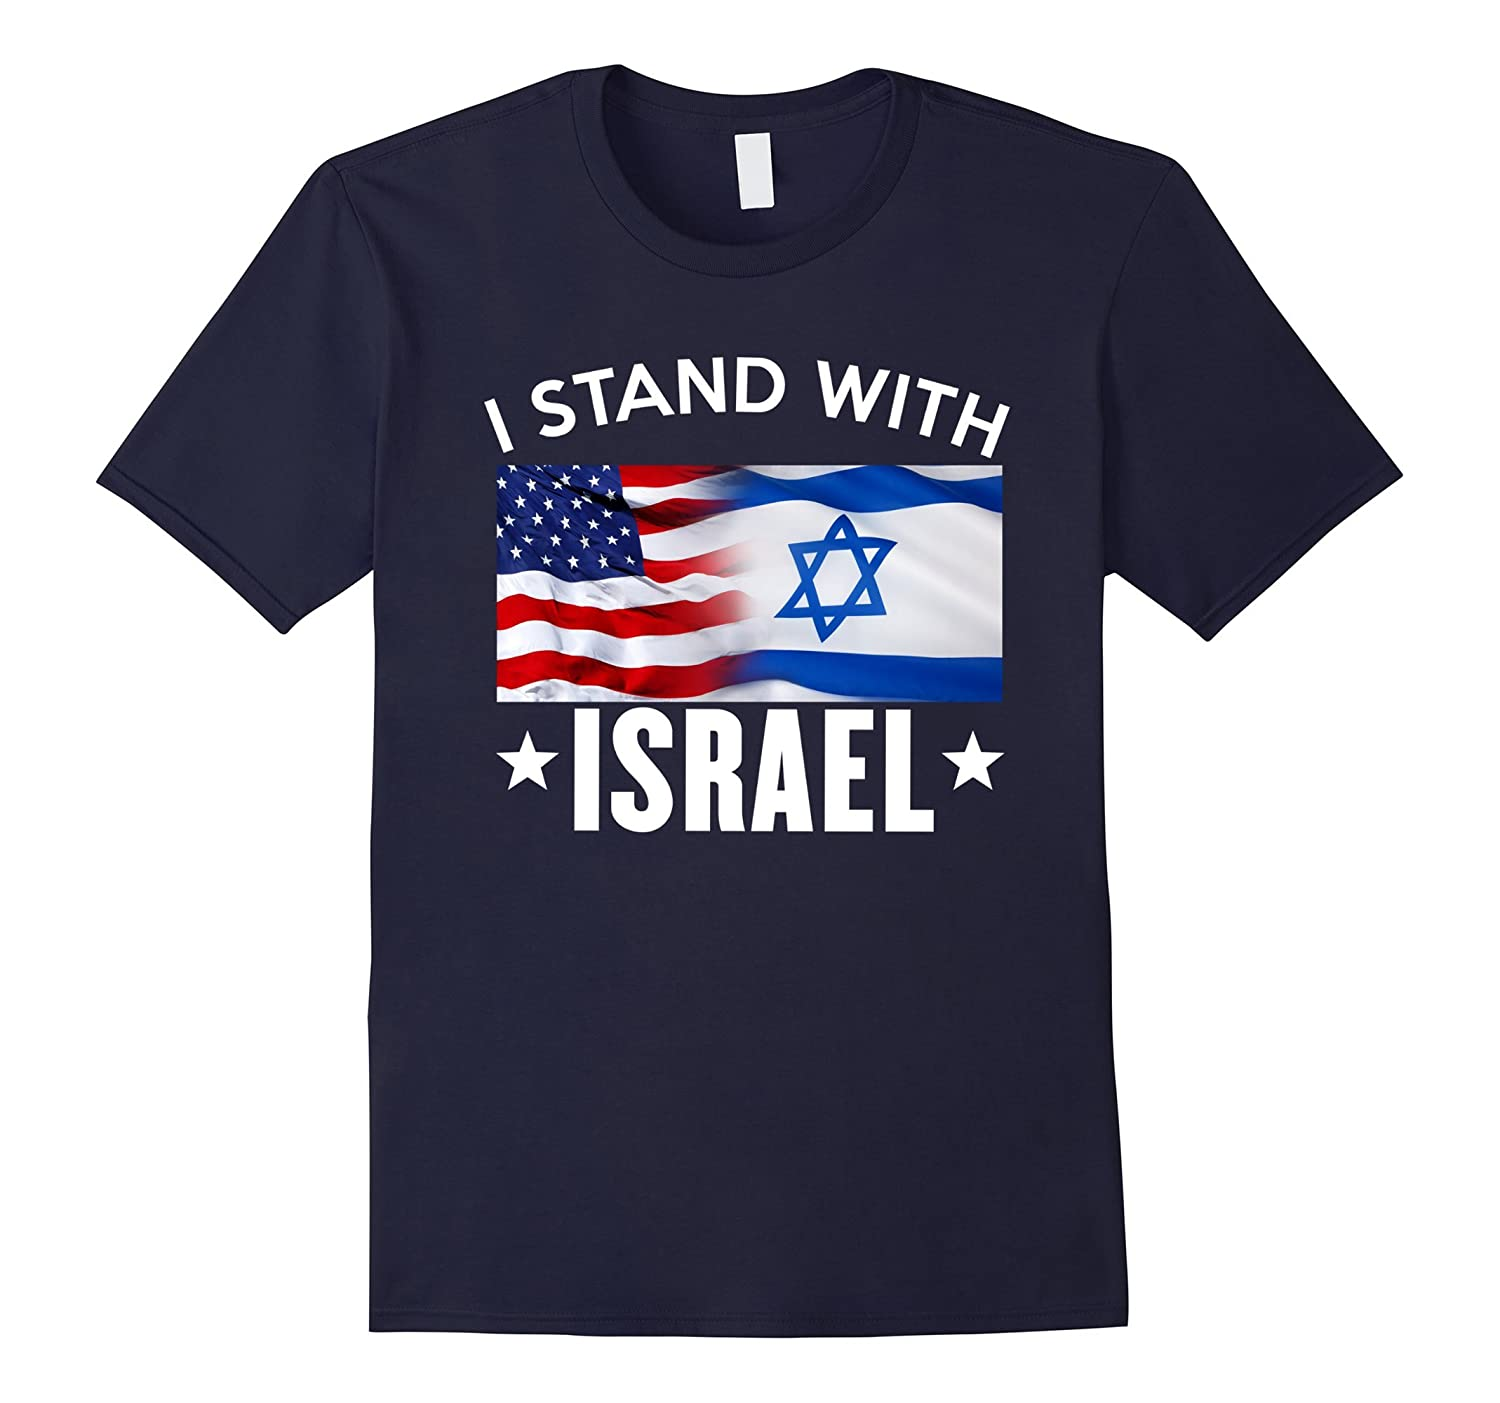 I Stand With Israel - Patriotic T-shirt USA and Israel Flag-CD